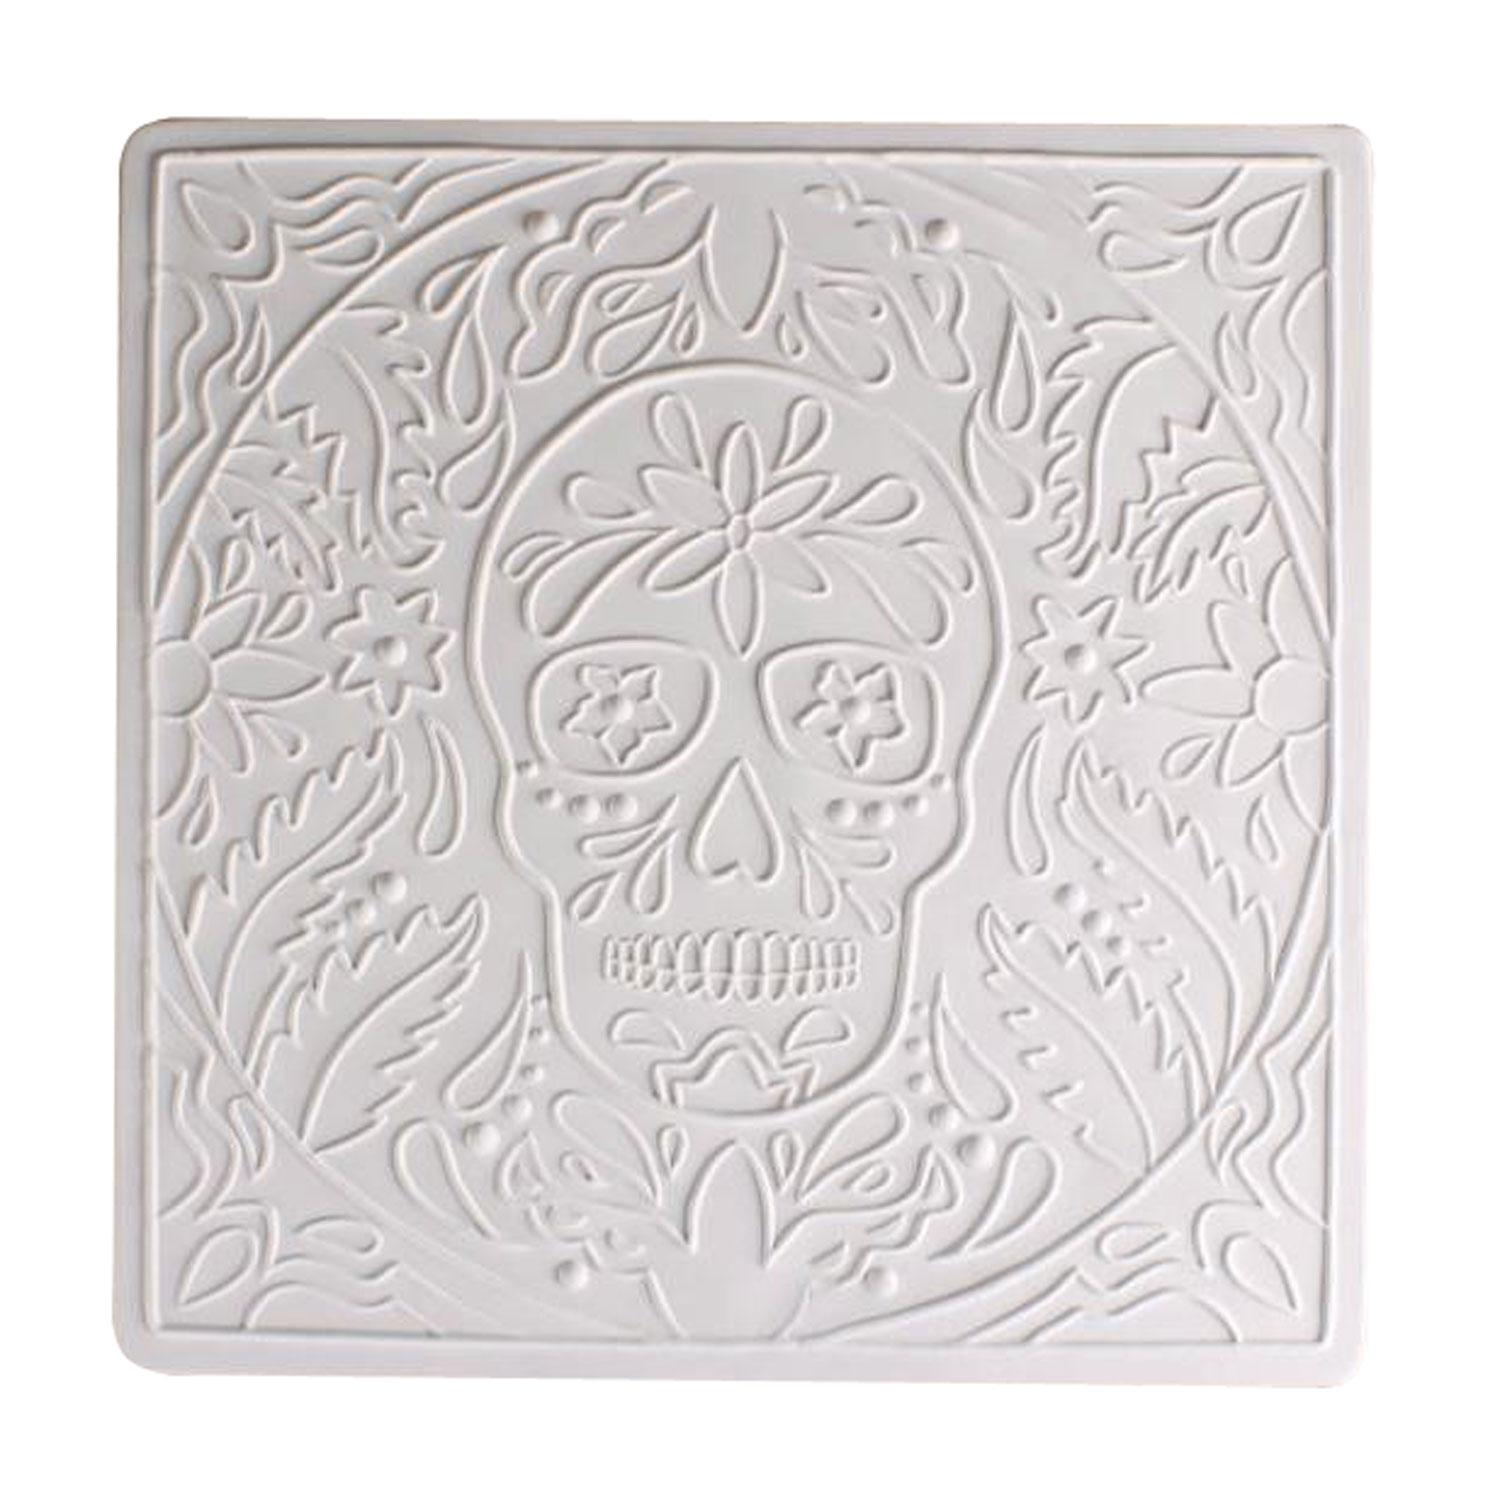 Day of the dead texture mold delphi glass day of the dead texture mold dailygadgetfo Choice Image